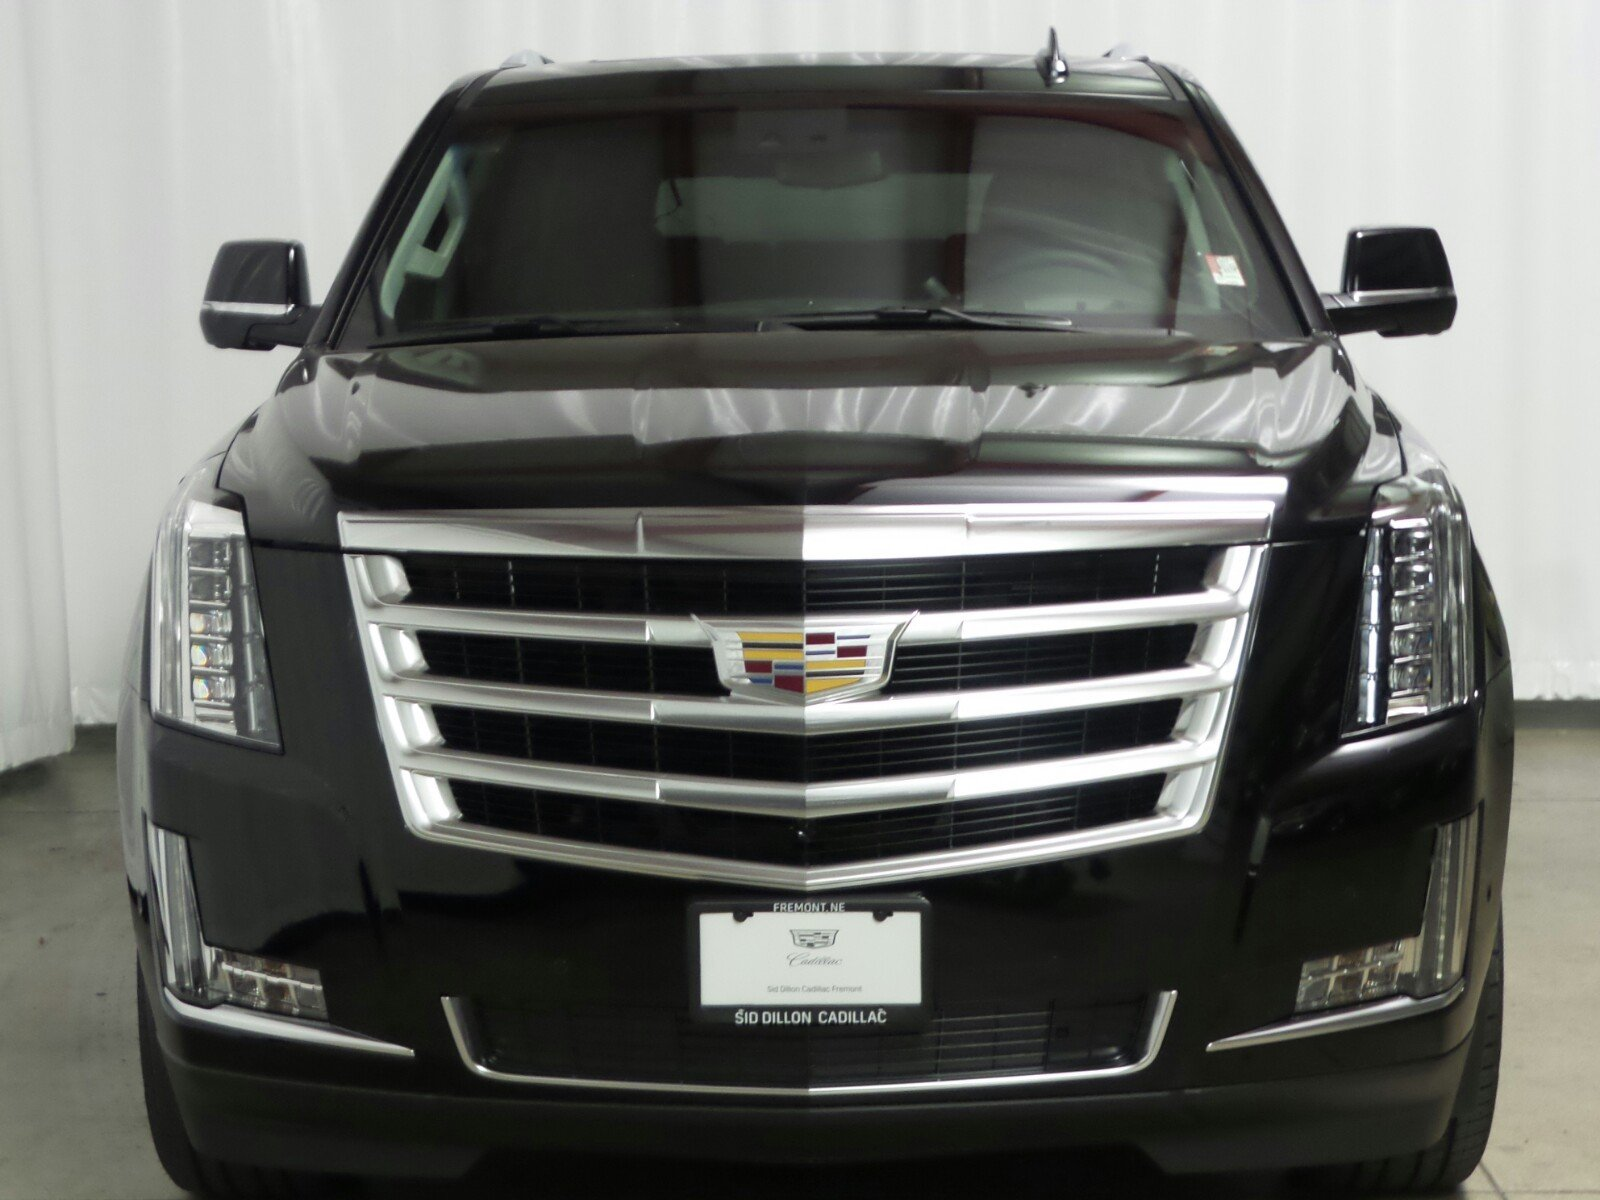 New 2017 Cadillac Escalade ESV Luxury SUV in Fremont ...